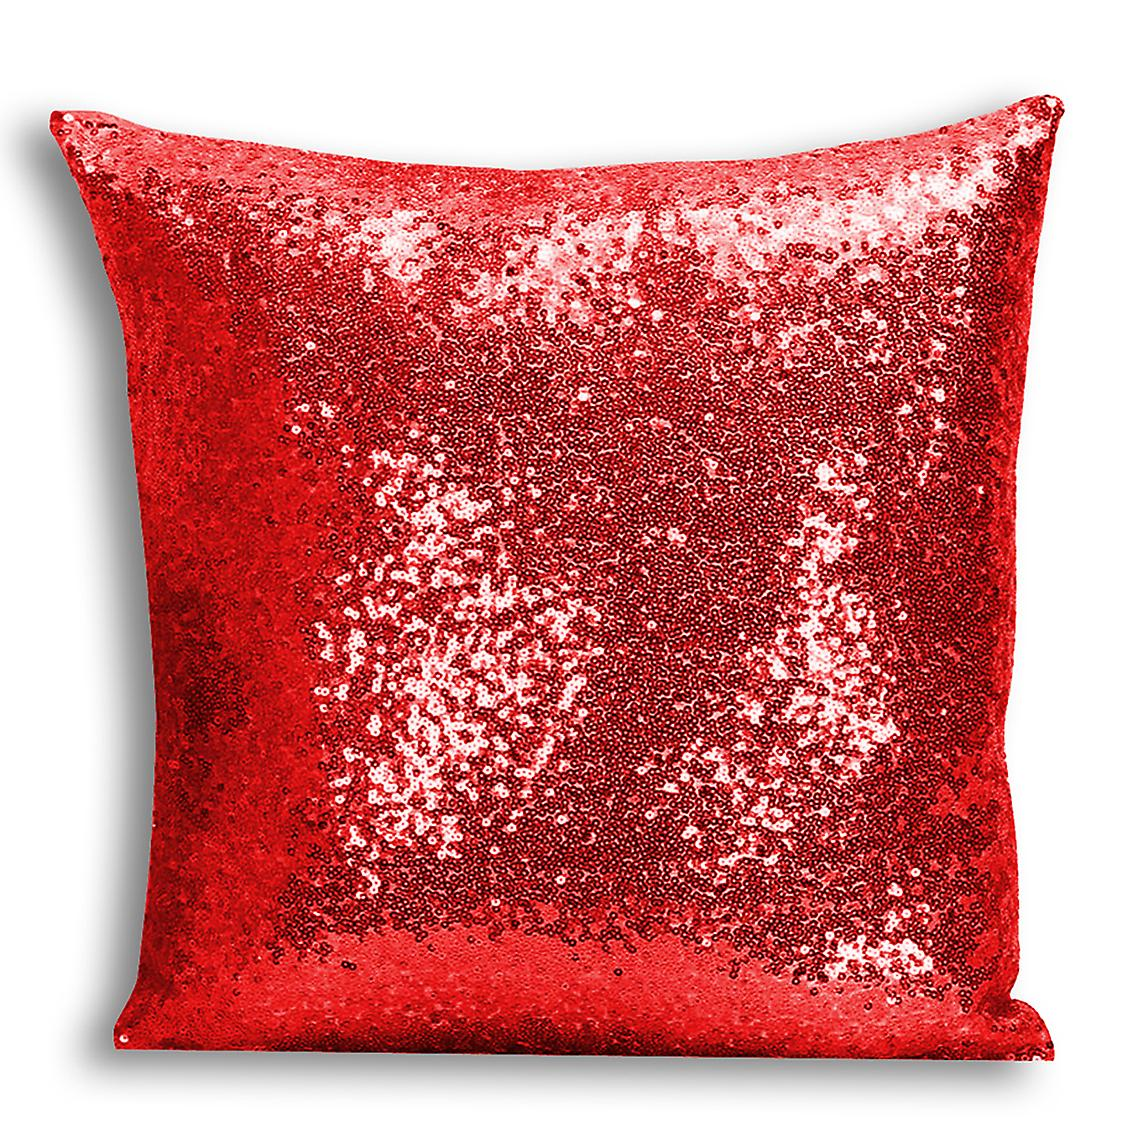 I 4 Cover Inserted Home Sequin Red Design CushionPillow Decor For tronixsUnicorn Printed With FKcJTl1